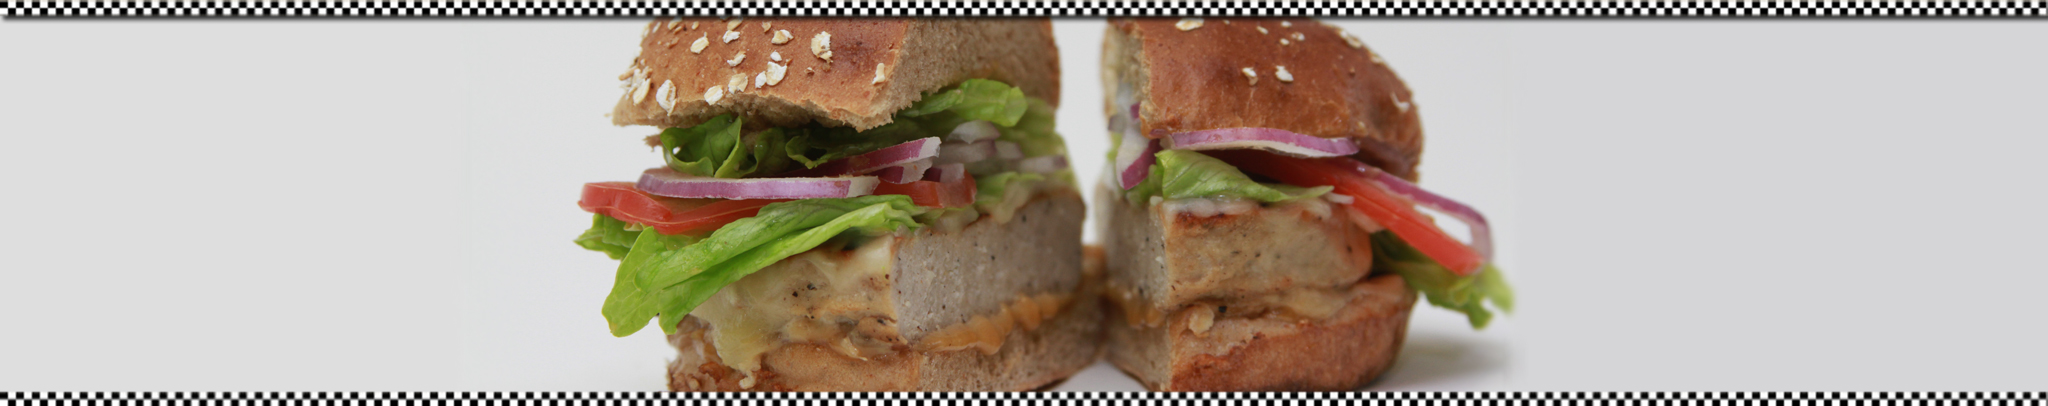 turkey-burger-header